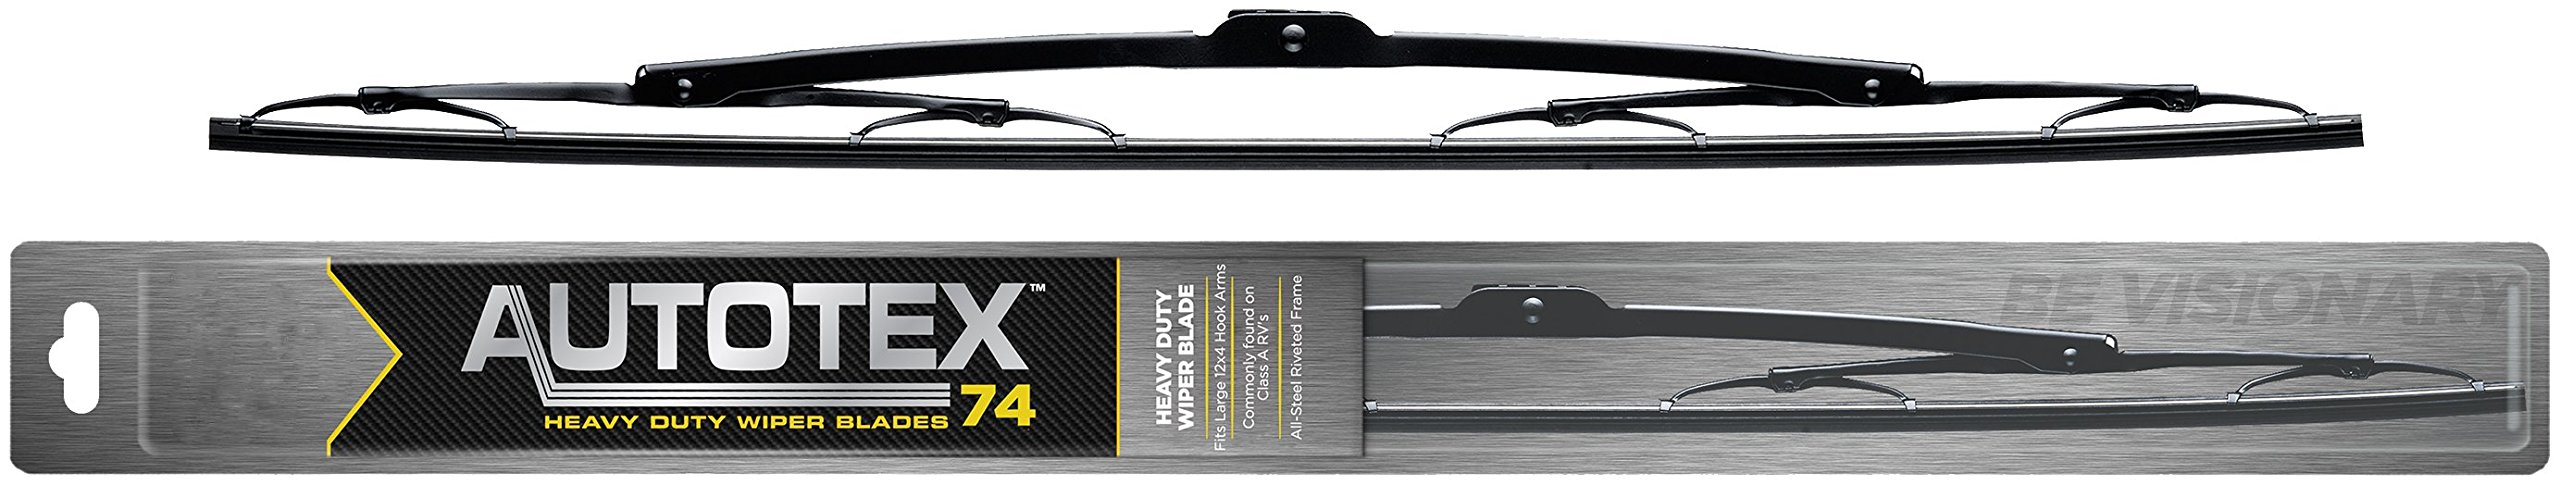 AutoTex Heavy Duty 74-32 74 Series 32'' Wiper Blade OEM Replacement Blades for Trucks, Equipment, Tractors, Boats, Buses. Genuine Automotive Supplies